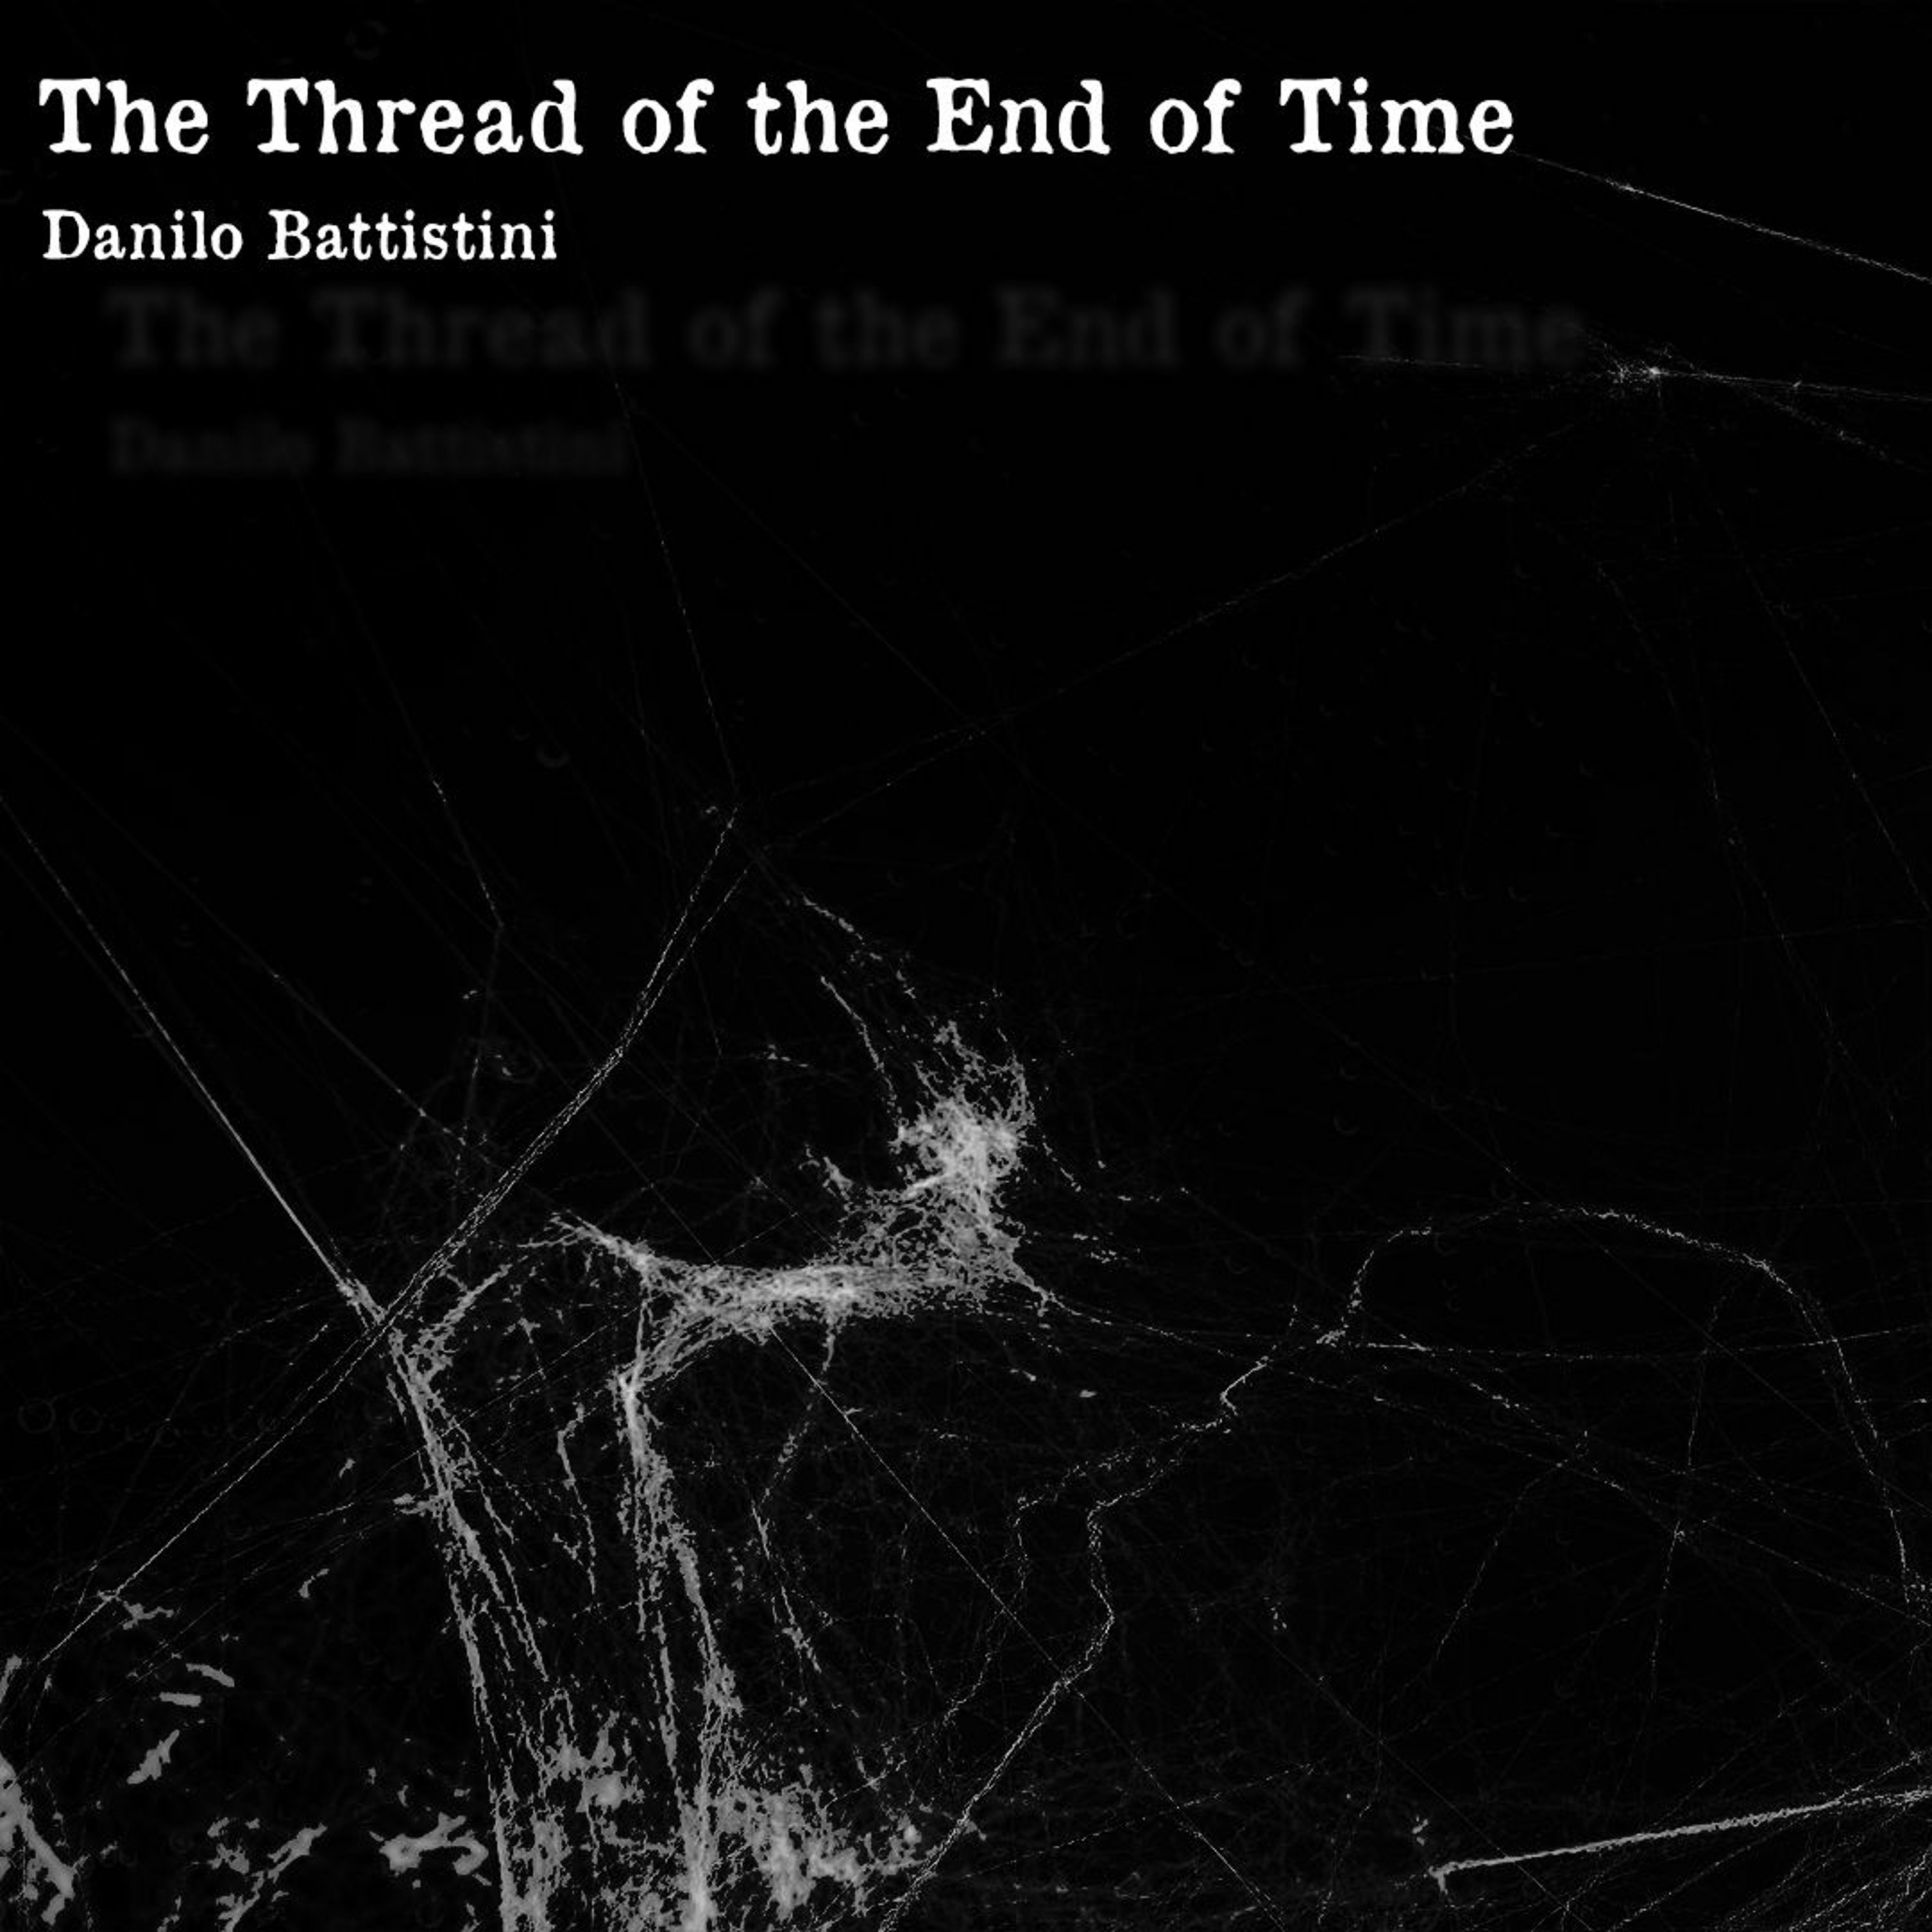 #109 [Audio Drama] The Thread of the End of Time